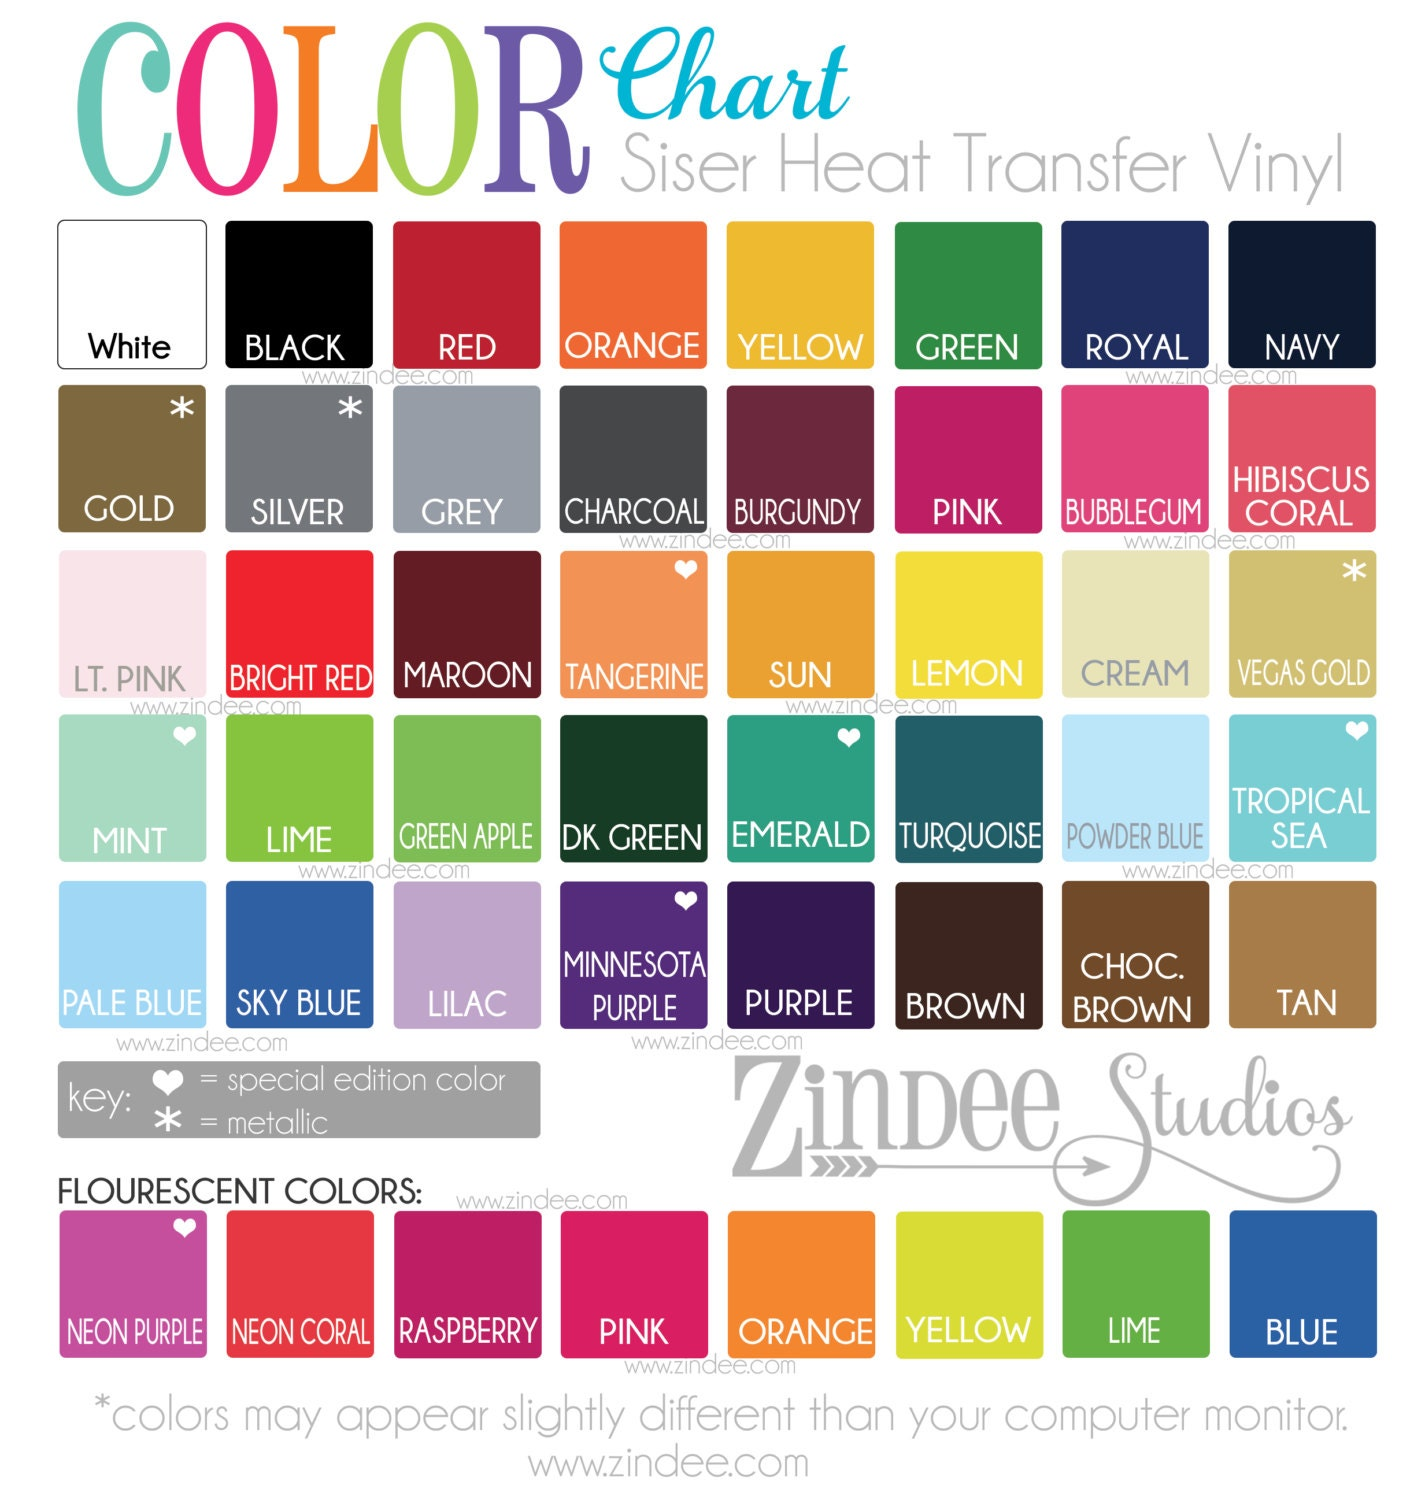 Siser Easyweed Heat Transfer Vinyl 12 Quot X15 Quot Sheets From